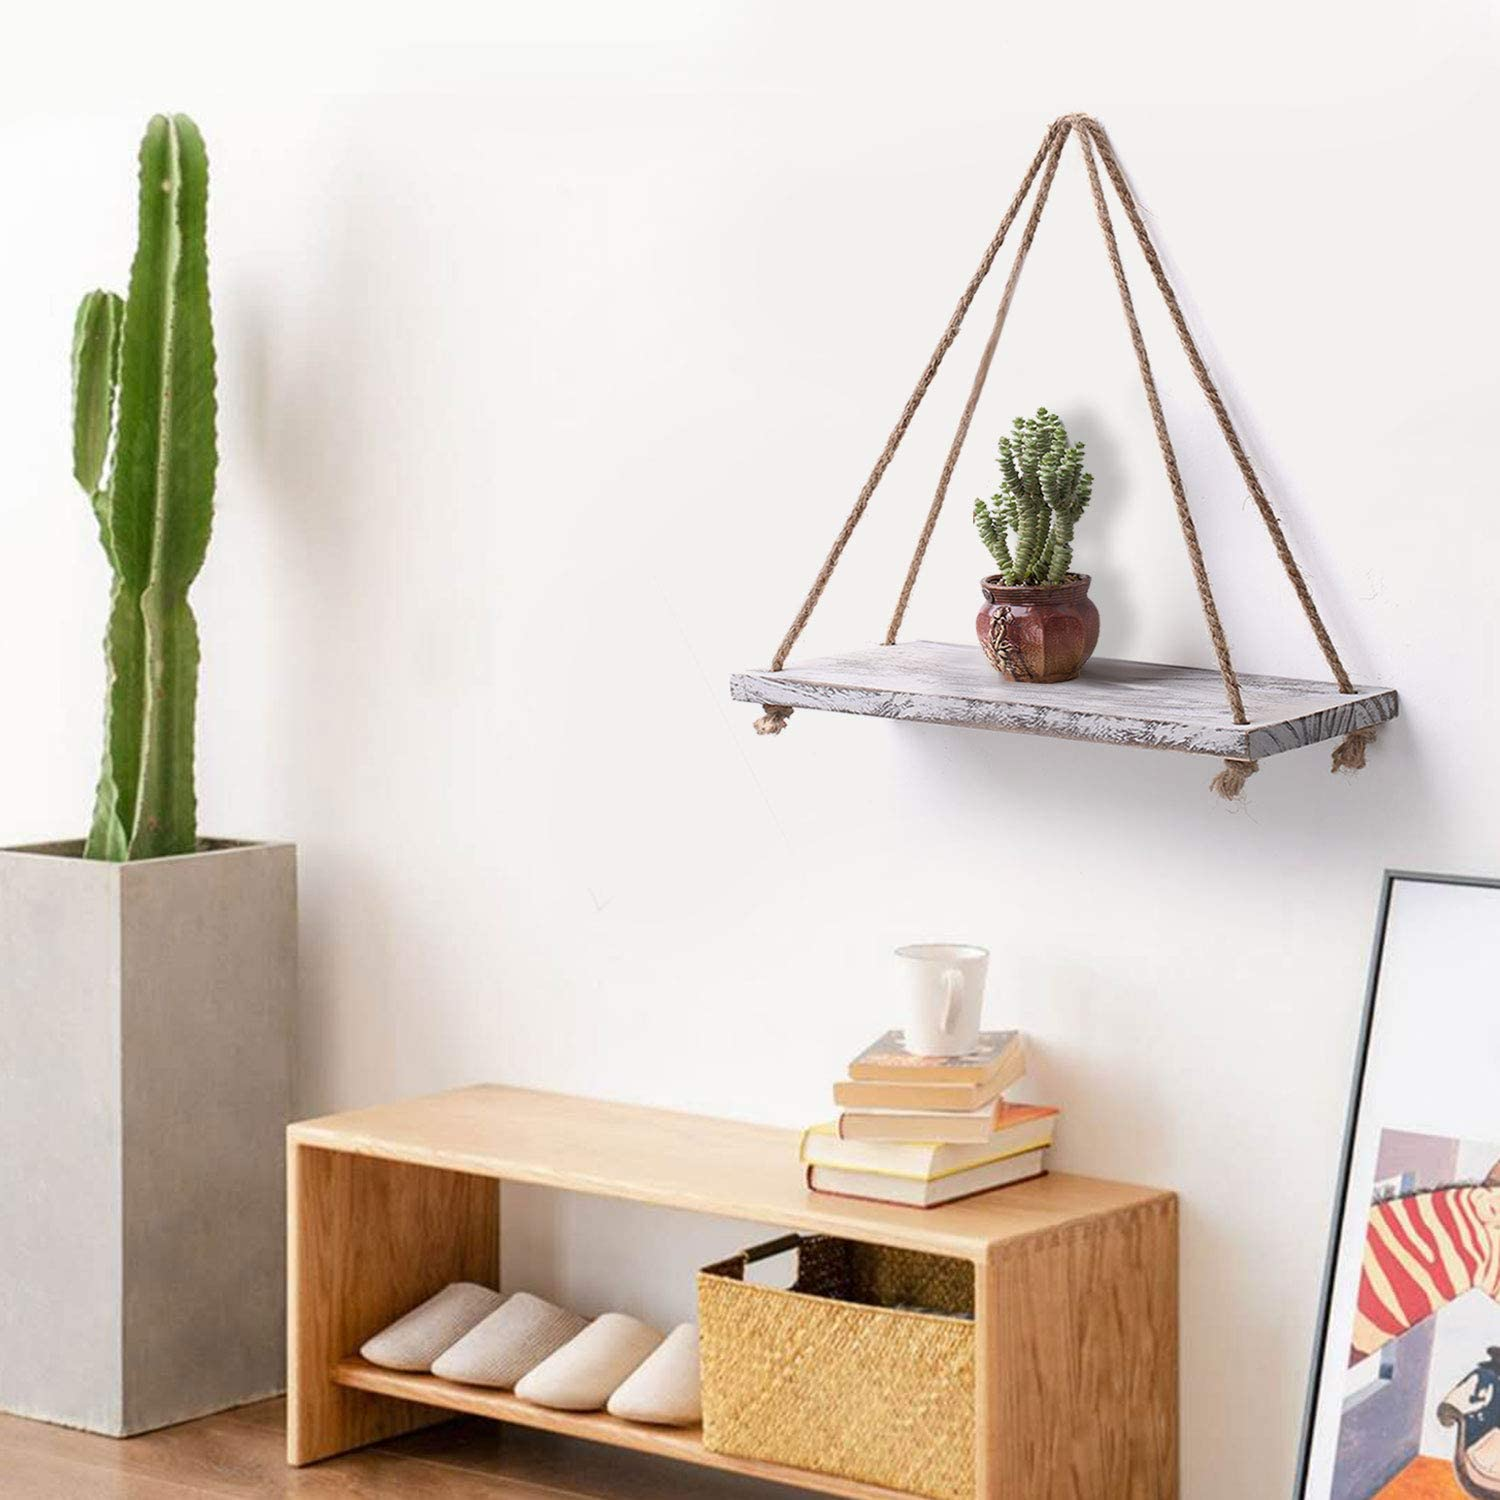 Rope Hanging Wall Shelves